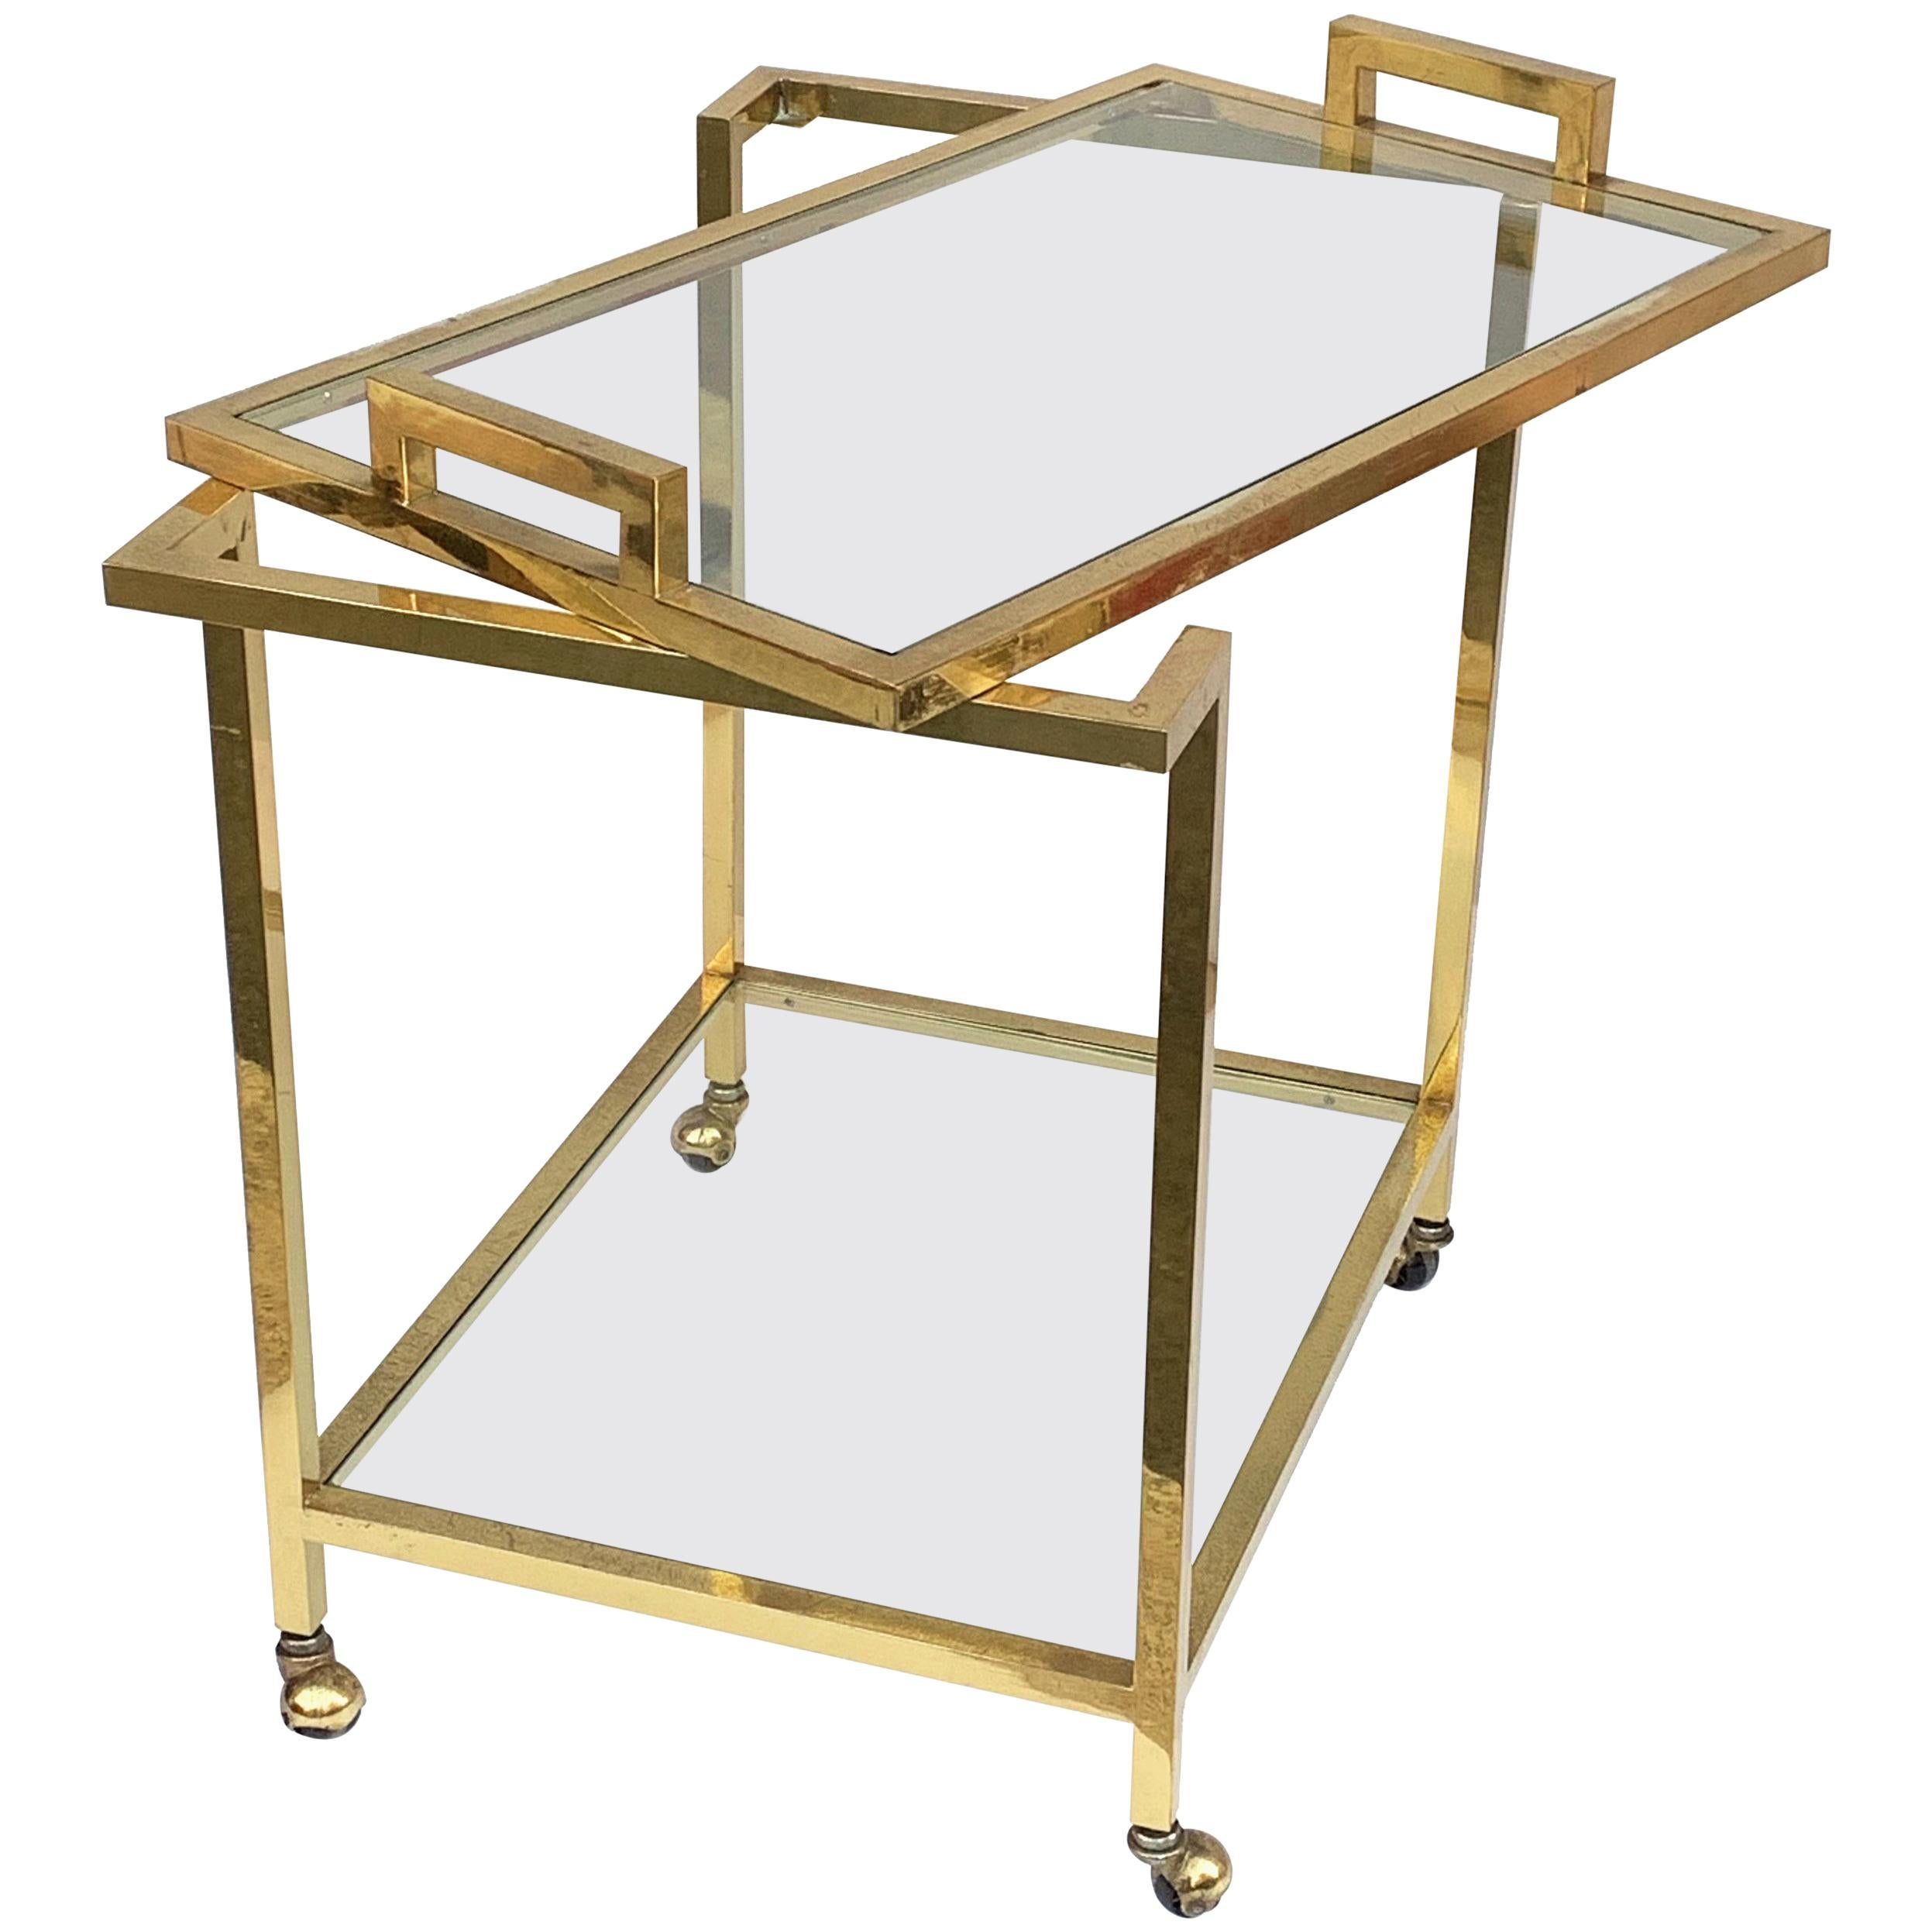 Romeo Rega style Trolley with Service Tray, Gilded Brass and Glass, Italy, 1980s